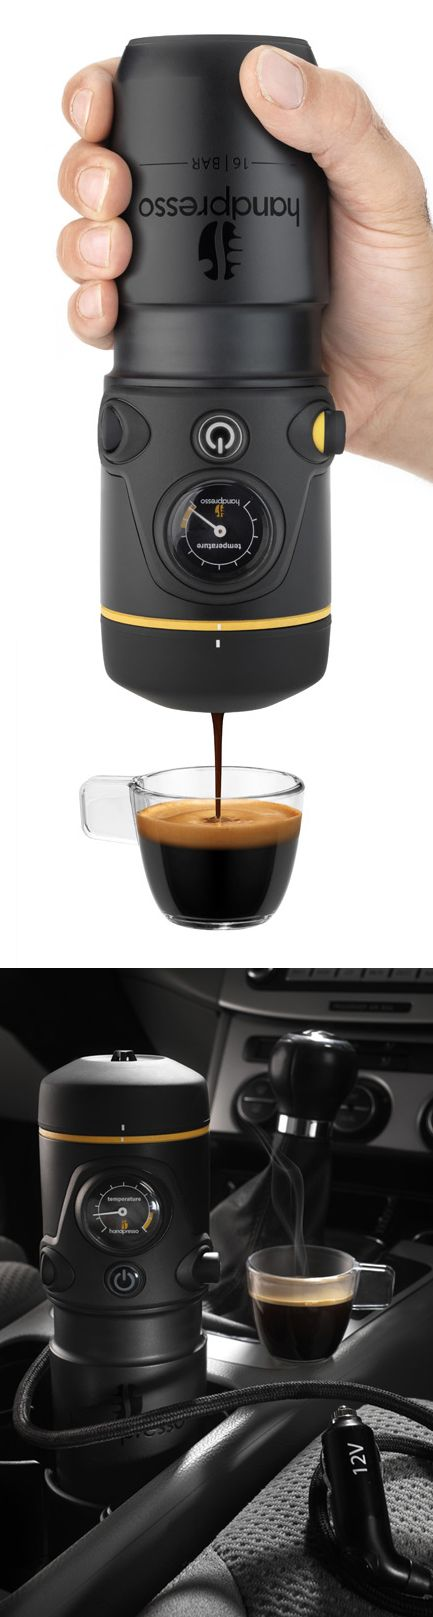 Portable Coffee Maker // simply plug the Handpresso into your car and have fresh brewed espresso on the go within minutes! Genius design! #product_design...:)